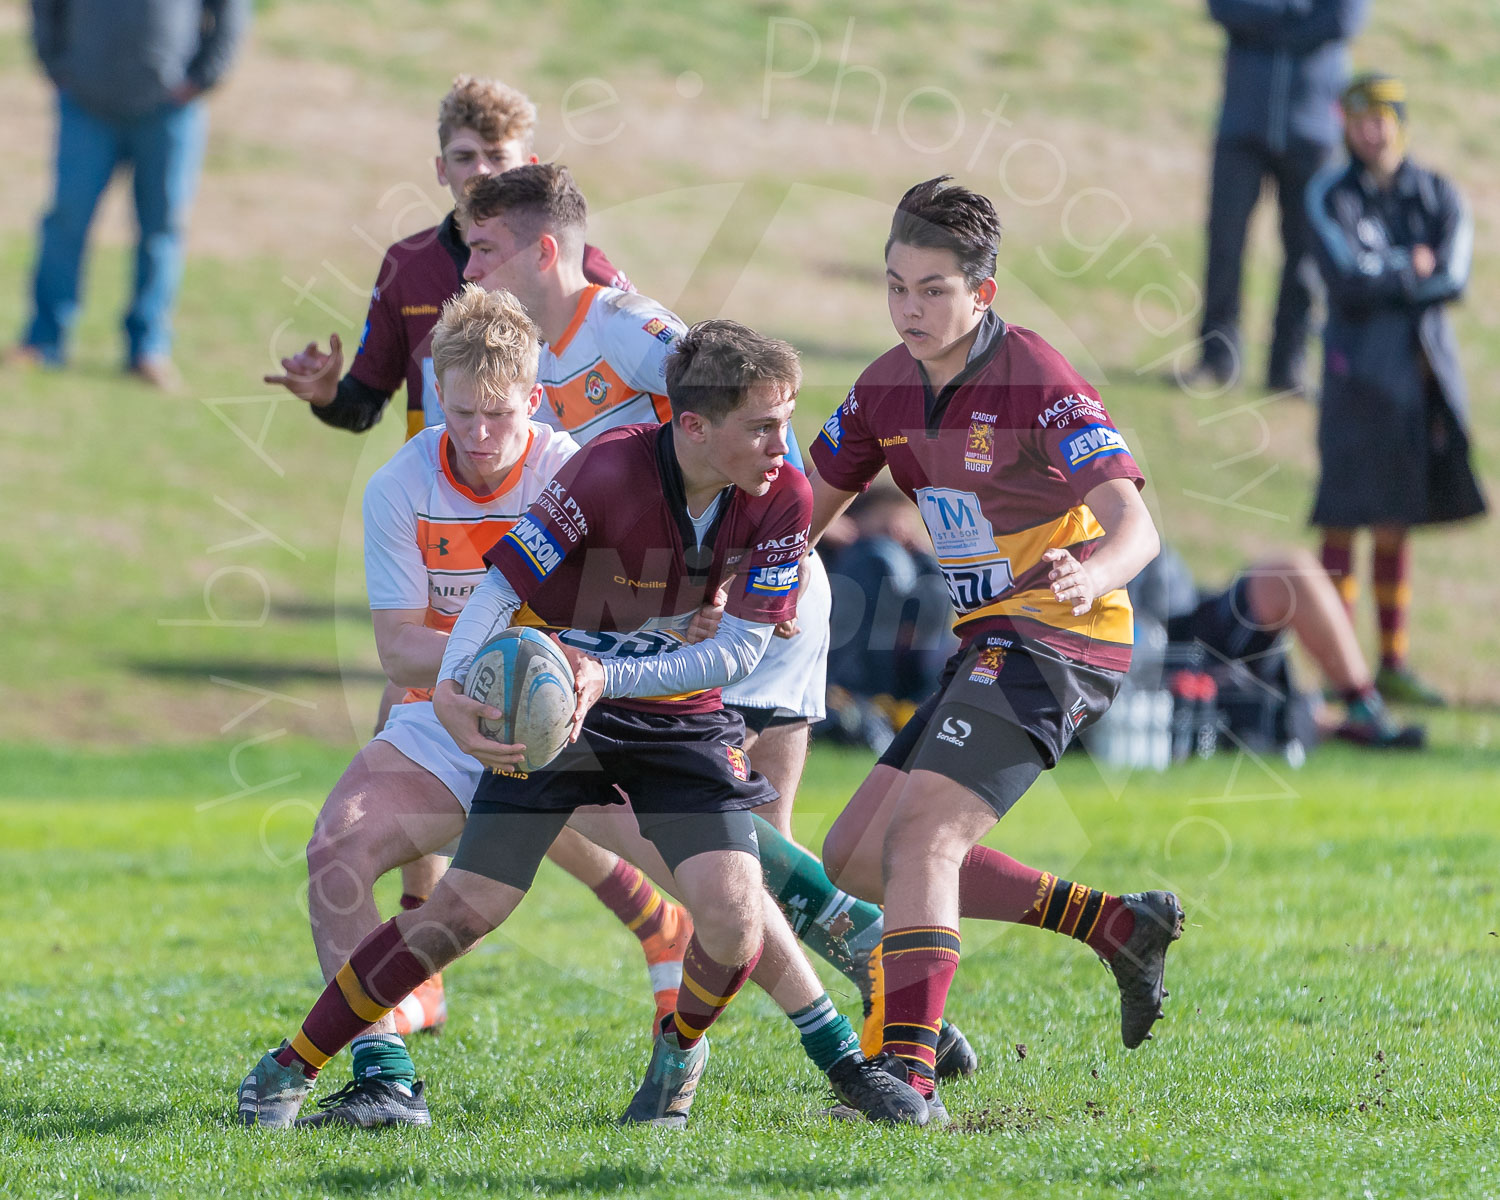 Offloading on the attack (Photo: Iain Frankish, Actuance Photography)